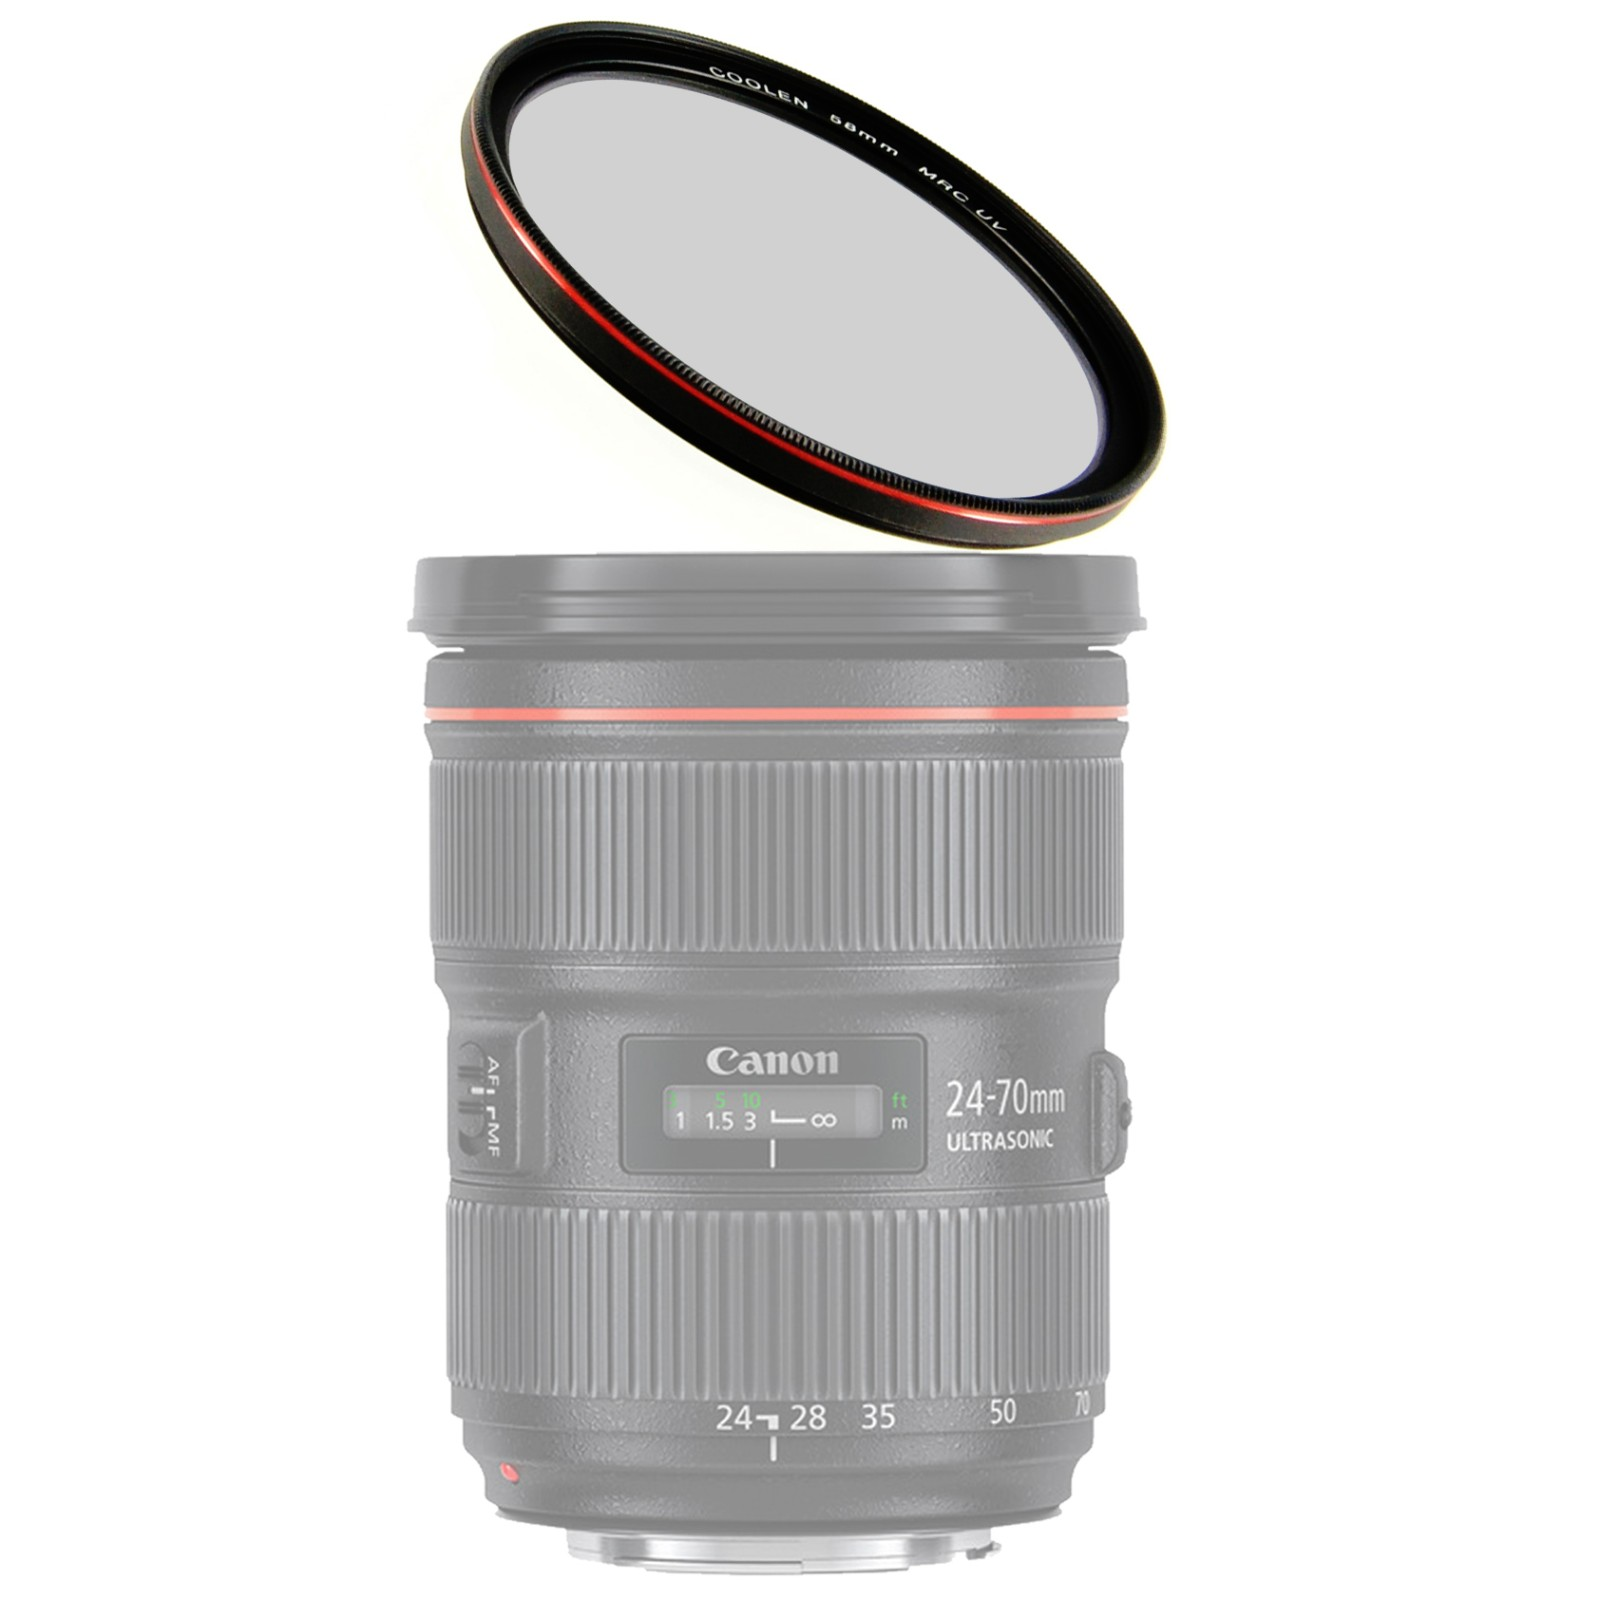 10-30mm,30-110mm,10mm Lenses Coolen 40.5mm MRC Ultra Thin Multi-Coated UV Filter Red Plating Compatible with Nikon 1 AW1,1 J1,1 J2,1 J3,1 J4,1 J5,1 V1,1 V2,1 V3,1 S1,1 S2 Mirrorless Digital Camera